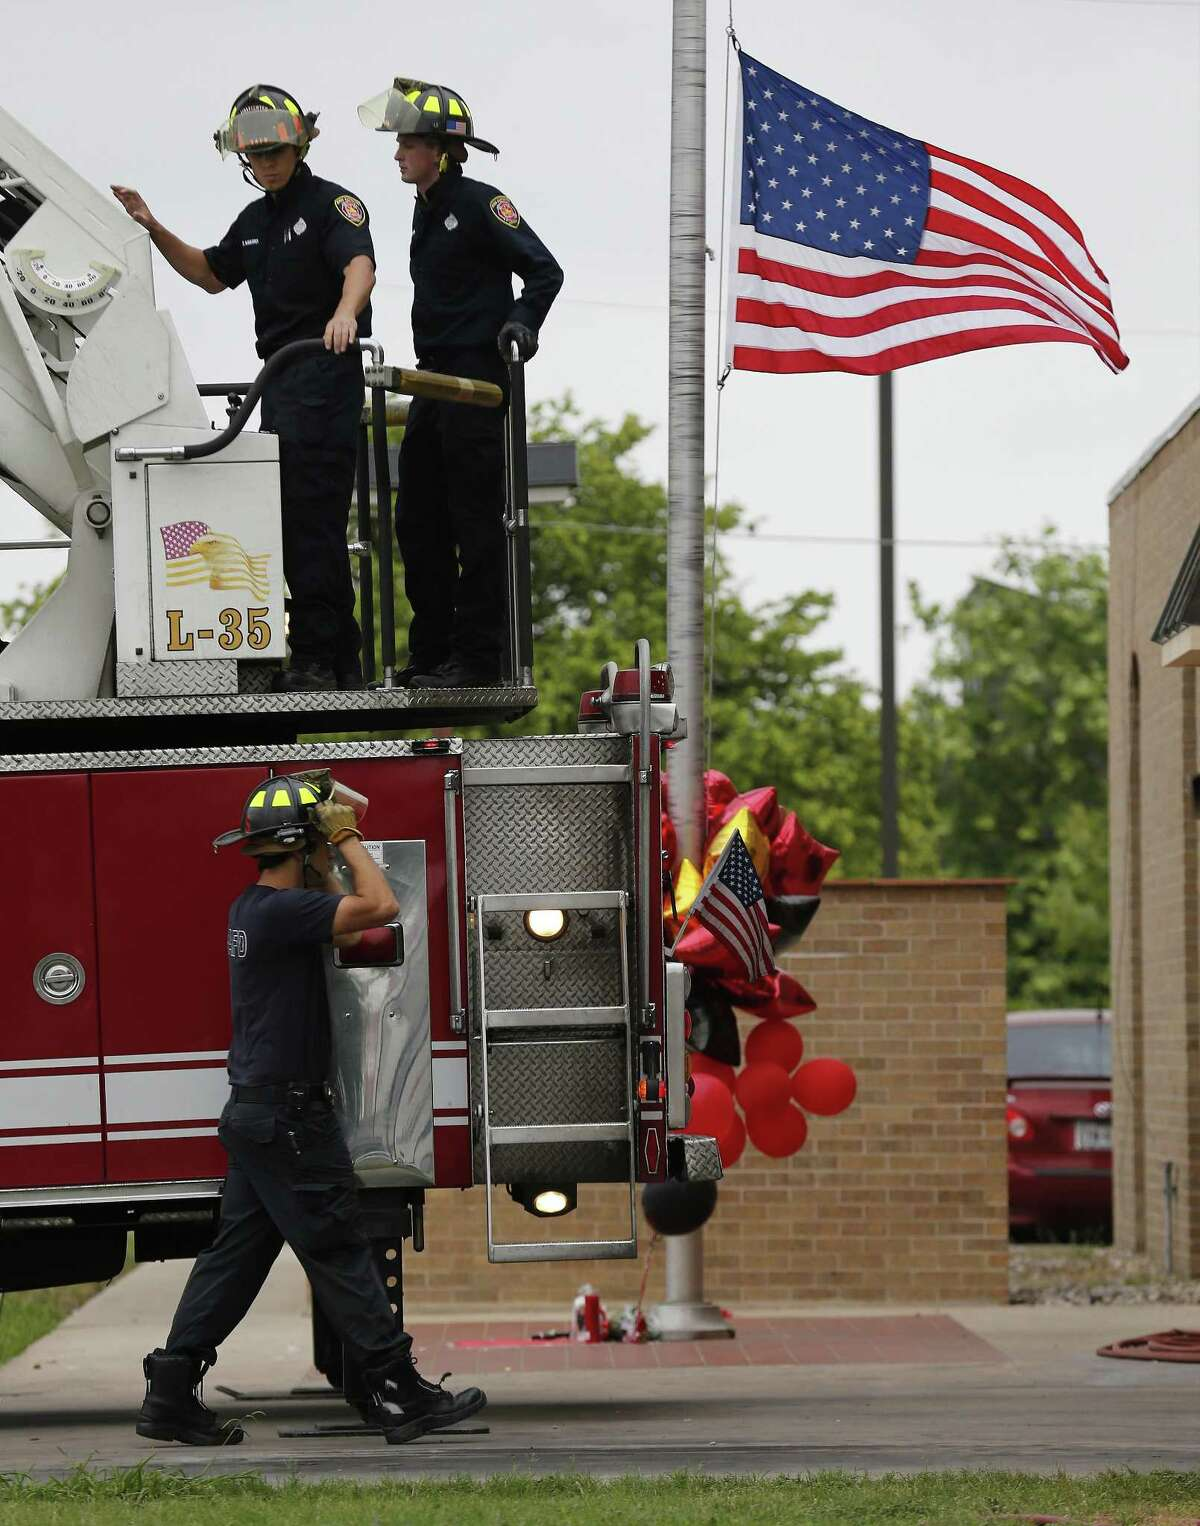 Firefighters at Fire Station No. 35 carry on with their work as the station's flag is flown at half mast on Saturday, May 20, 2017. Fire investigators remain at the scene of a four-alarm fire that took the life of SAFD firefighter Scott Deem. The scene at the Ingram Square retail center was still heavily blocked off as investigators examine remnants of a structure fire so intense that it resulted in the death of the six-year veteran of the fire department. A few mourners came to pray at a small memorial built near the scene. (Kin Man Hui/San Antonio Express-News)